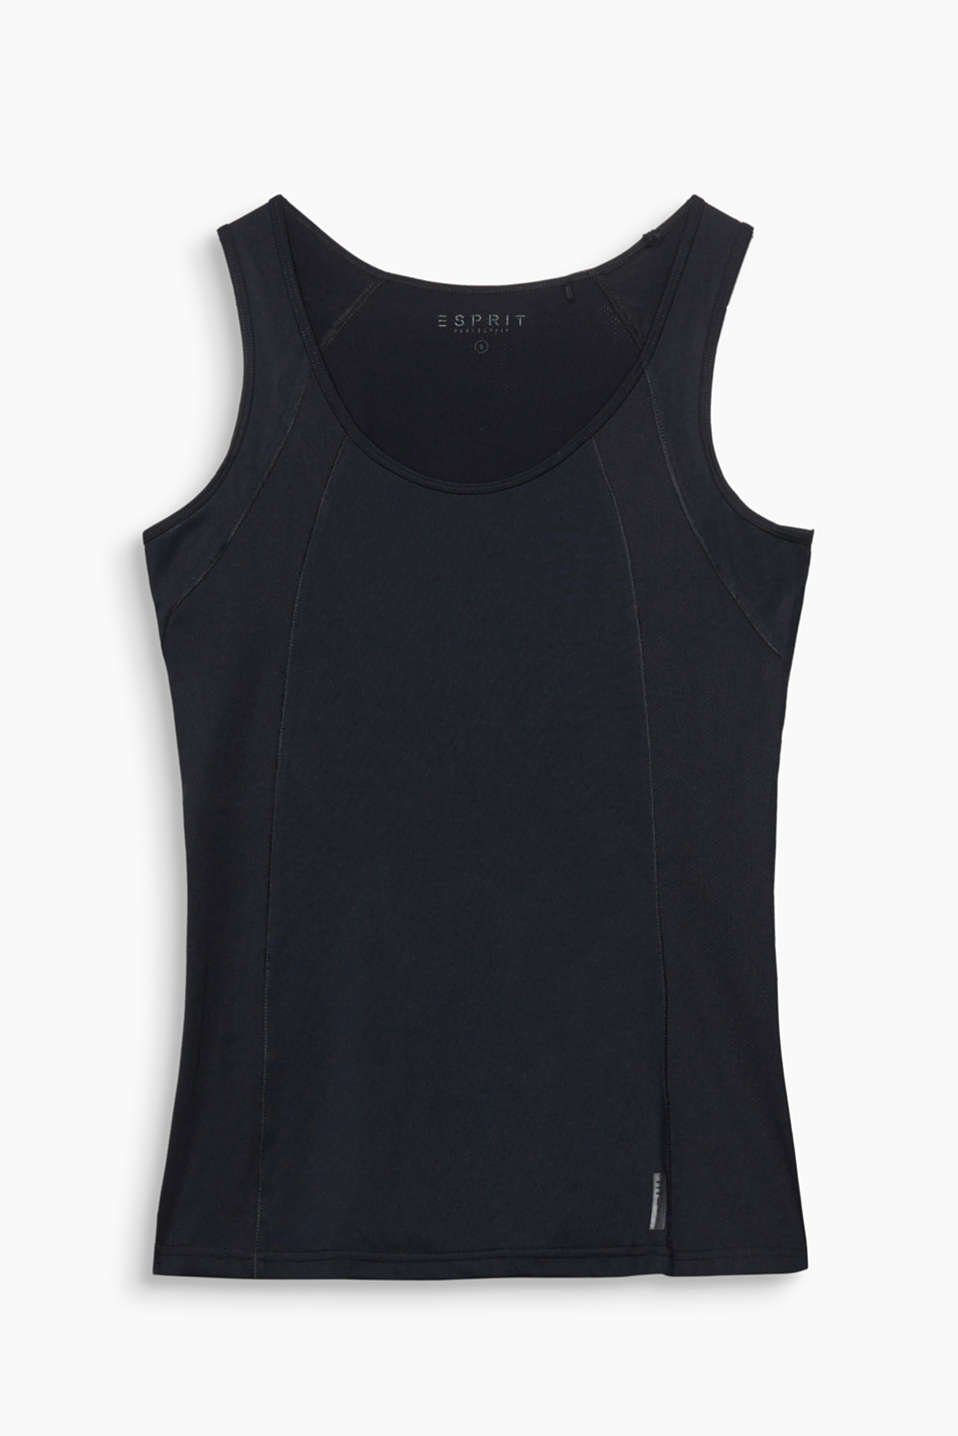 Tailliertes Tank-Top mit Mesh-Details, E-DRY